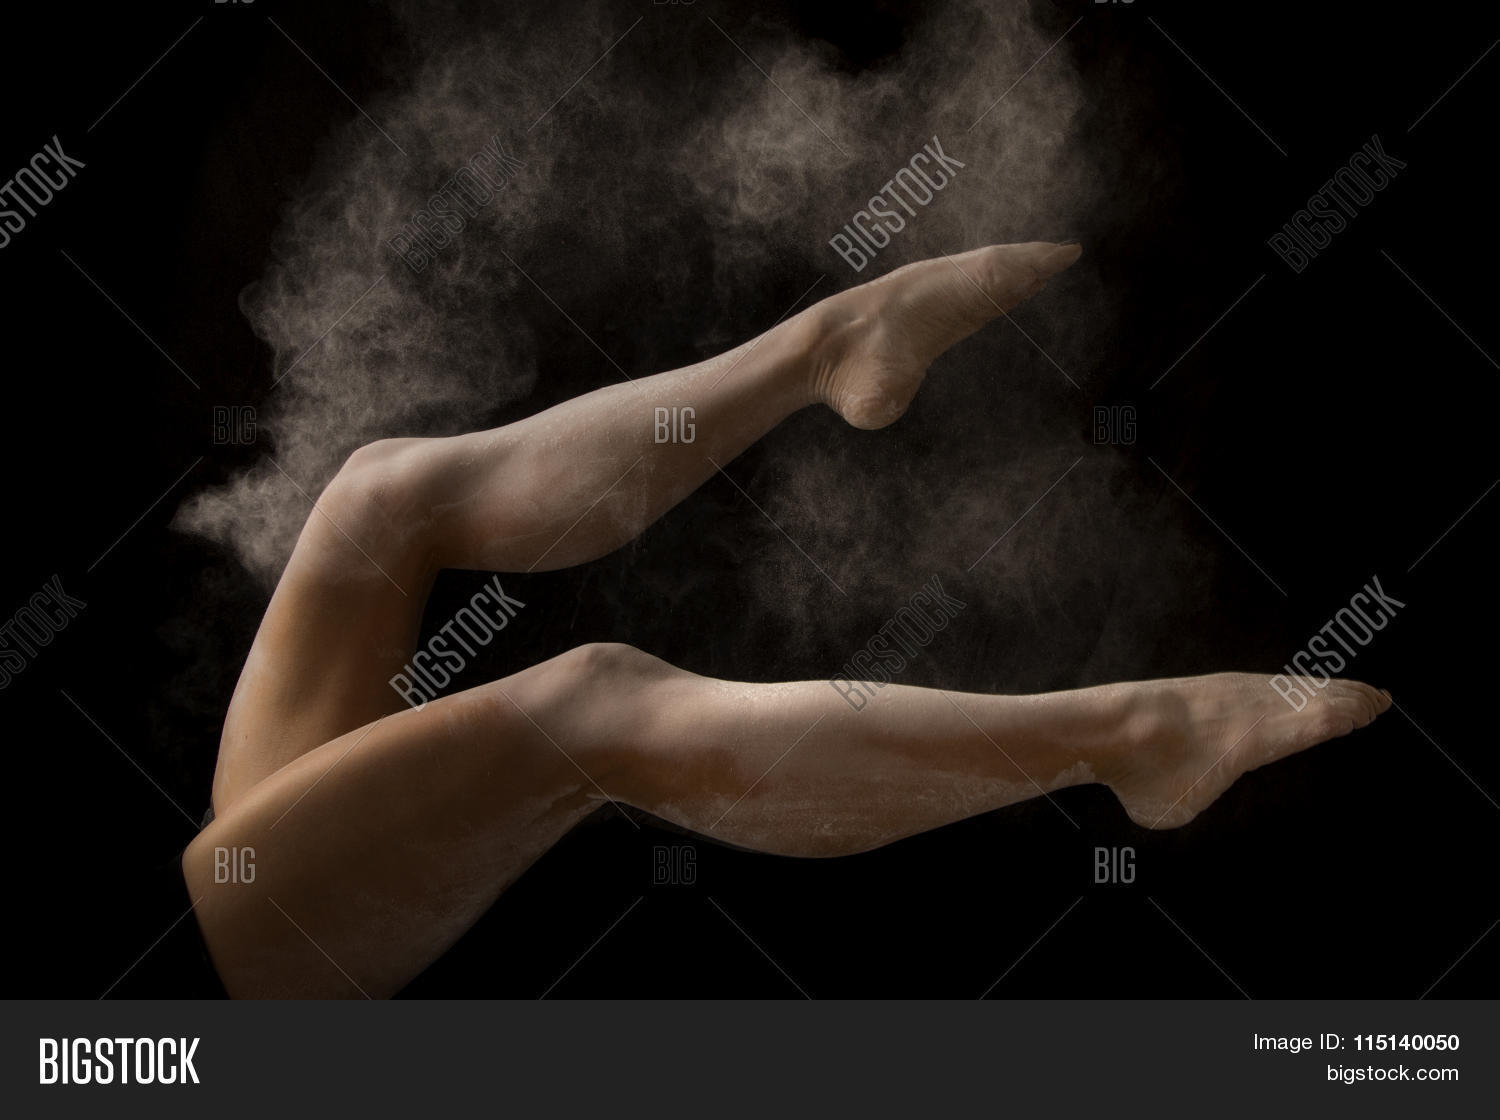 A woman's legs kicking and flexing with powder flying in the air.